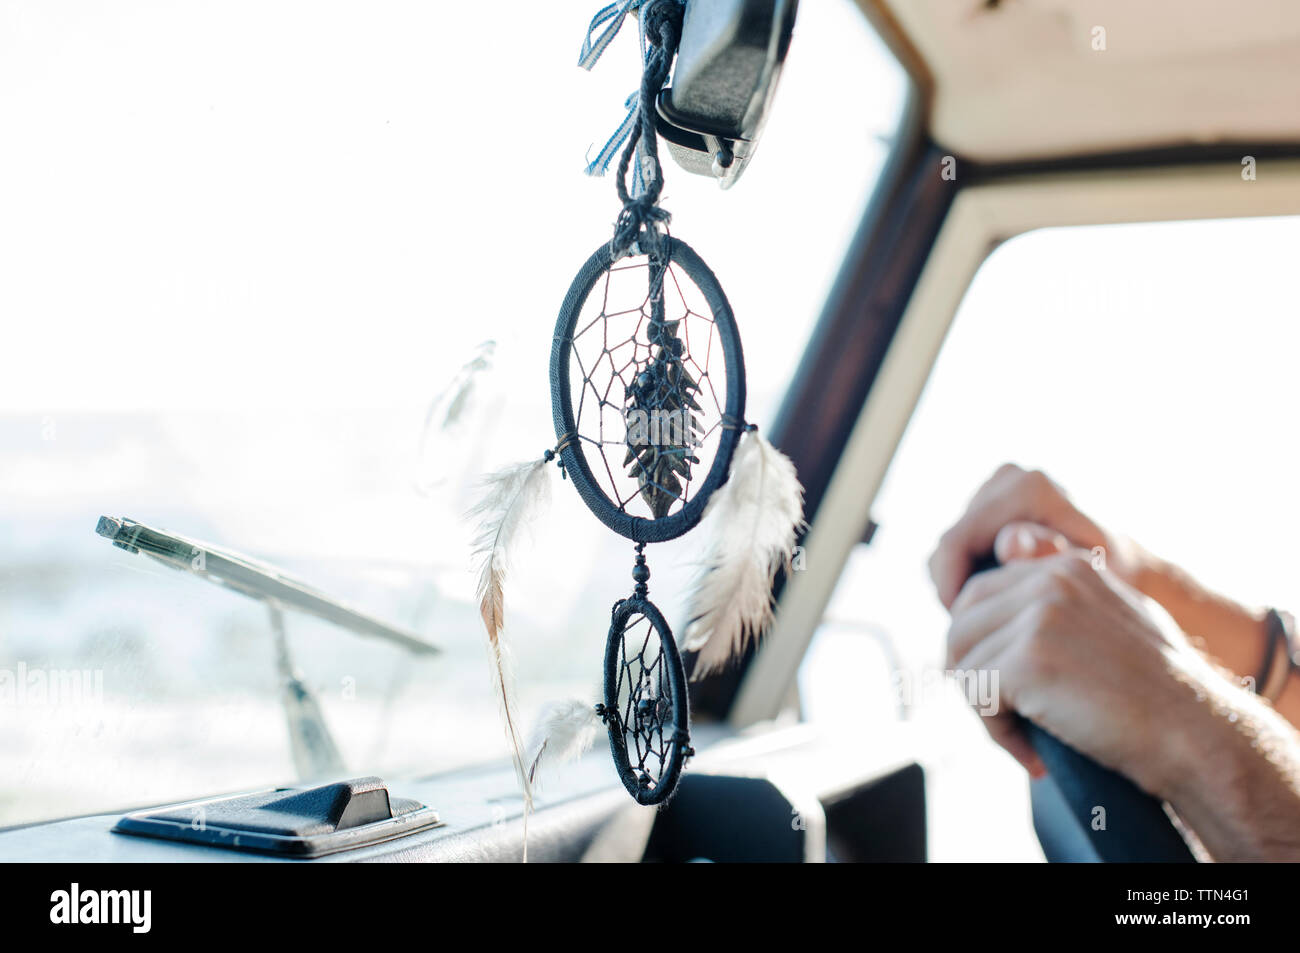 Cropped hands of man by dreamcatcher driving off-road vehicle - Stock Image